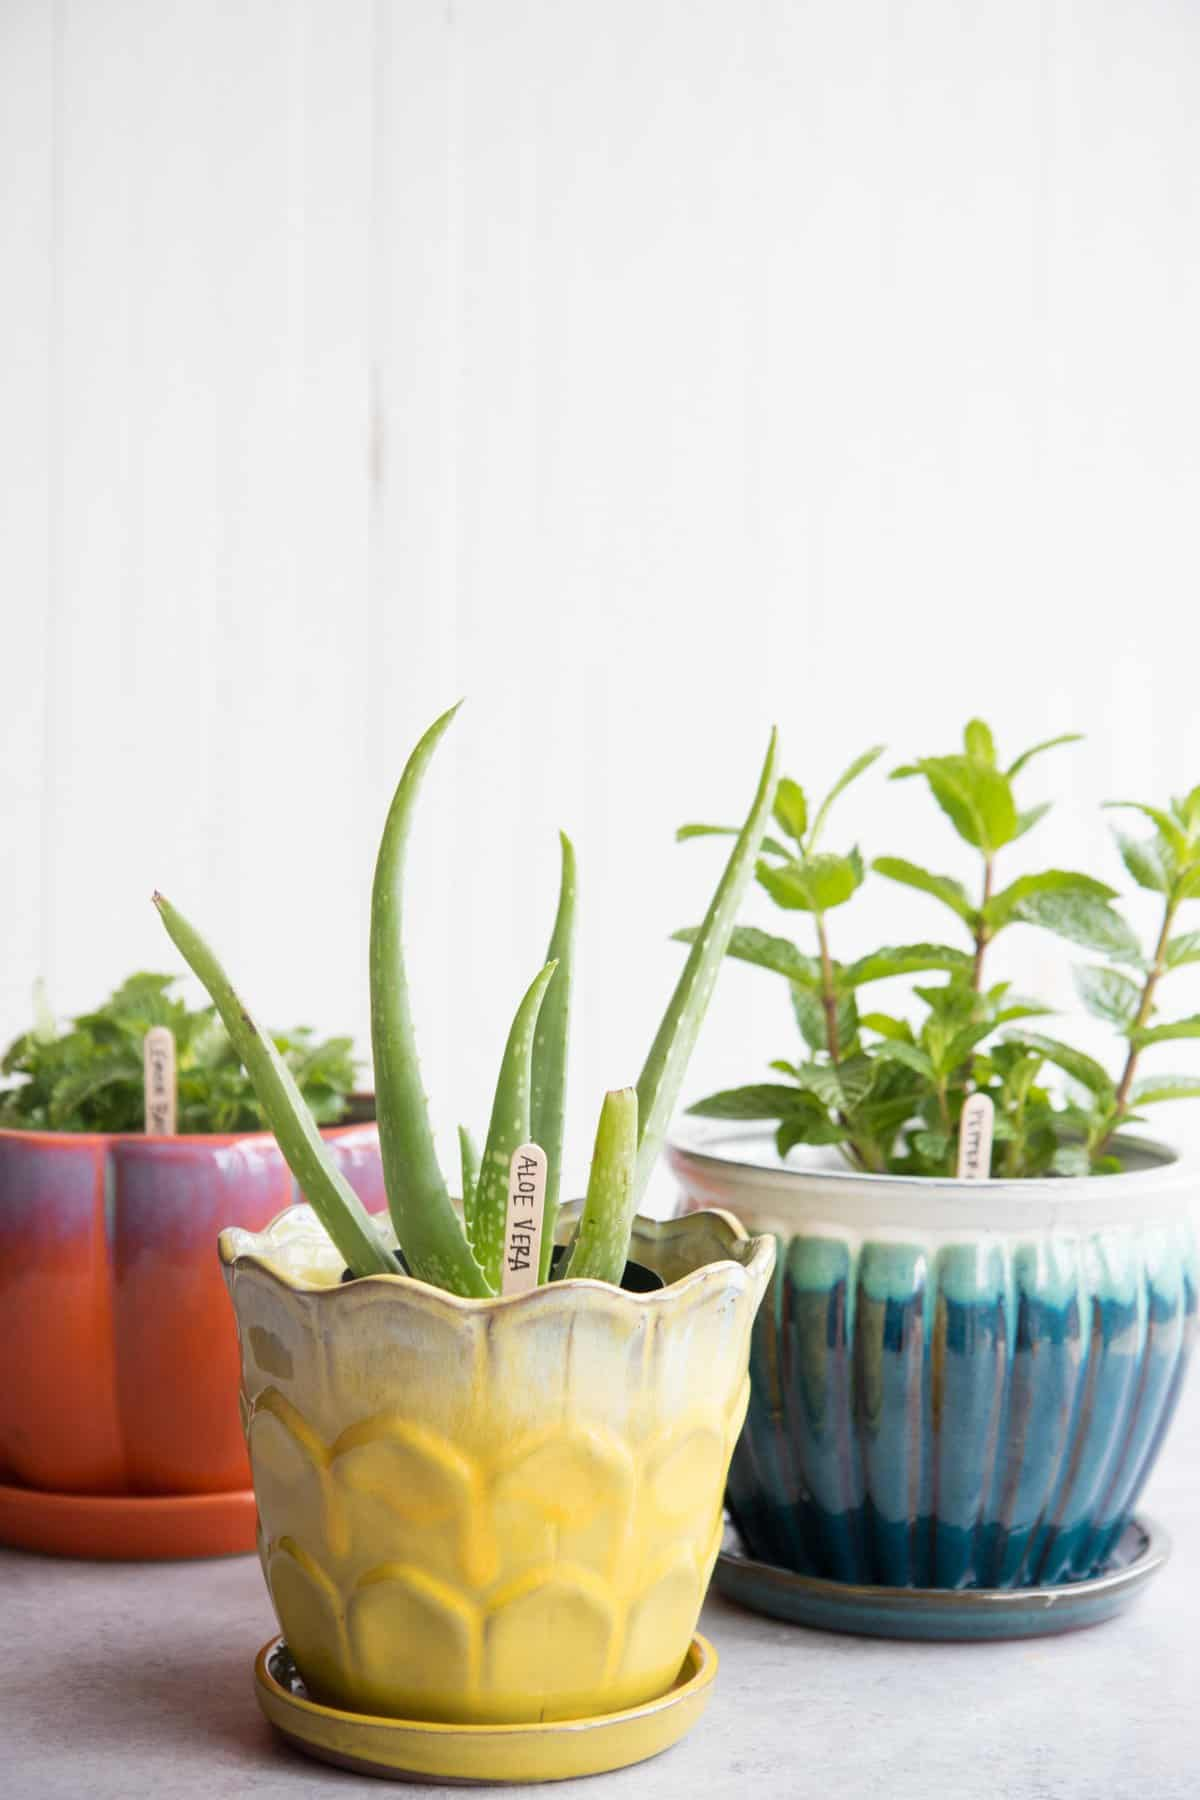 Aloe vera in a yellow pot, peppermint in a blue pot, and lemon balm in a red-orange flower pot